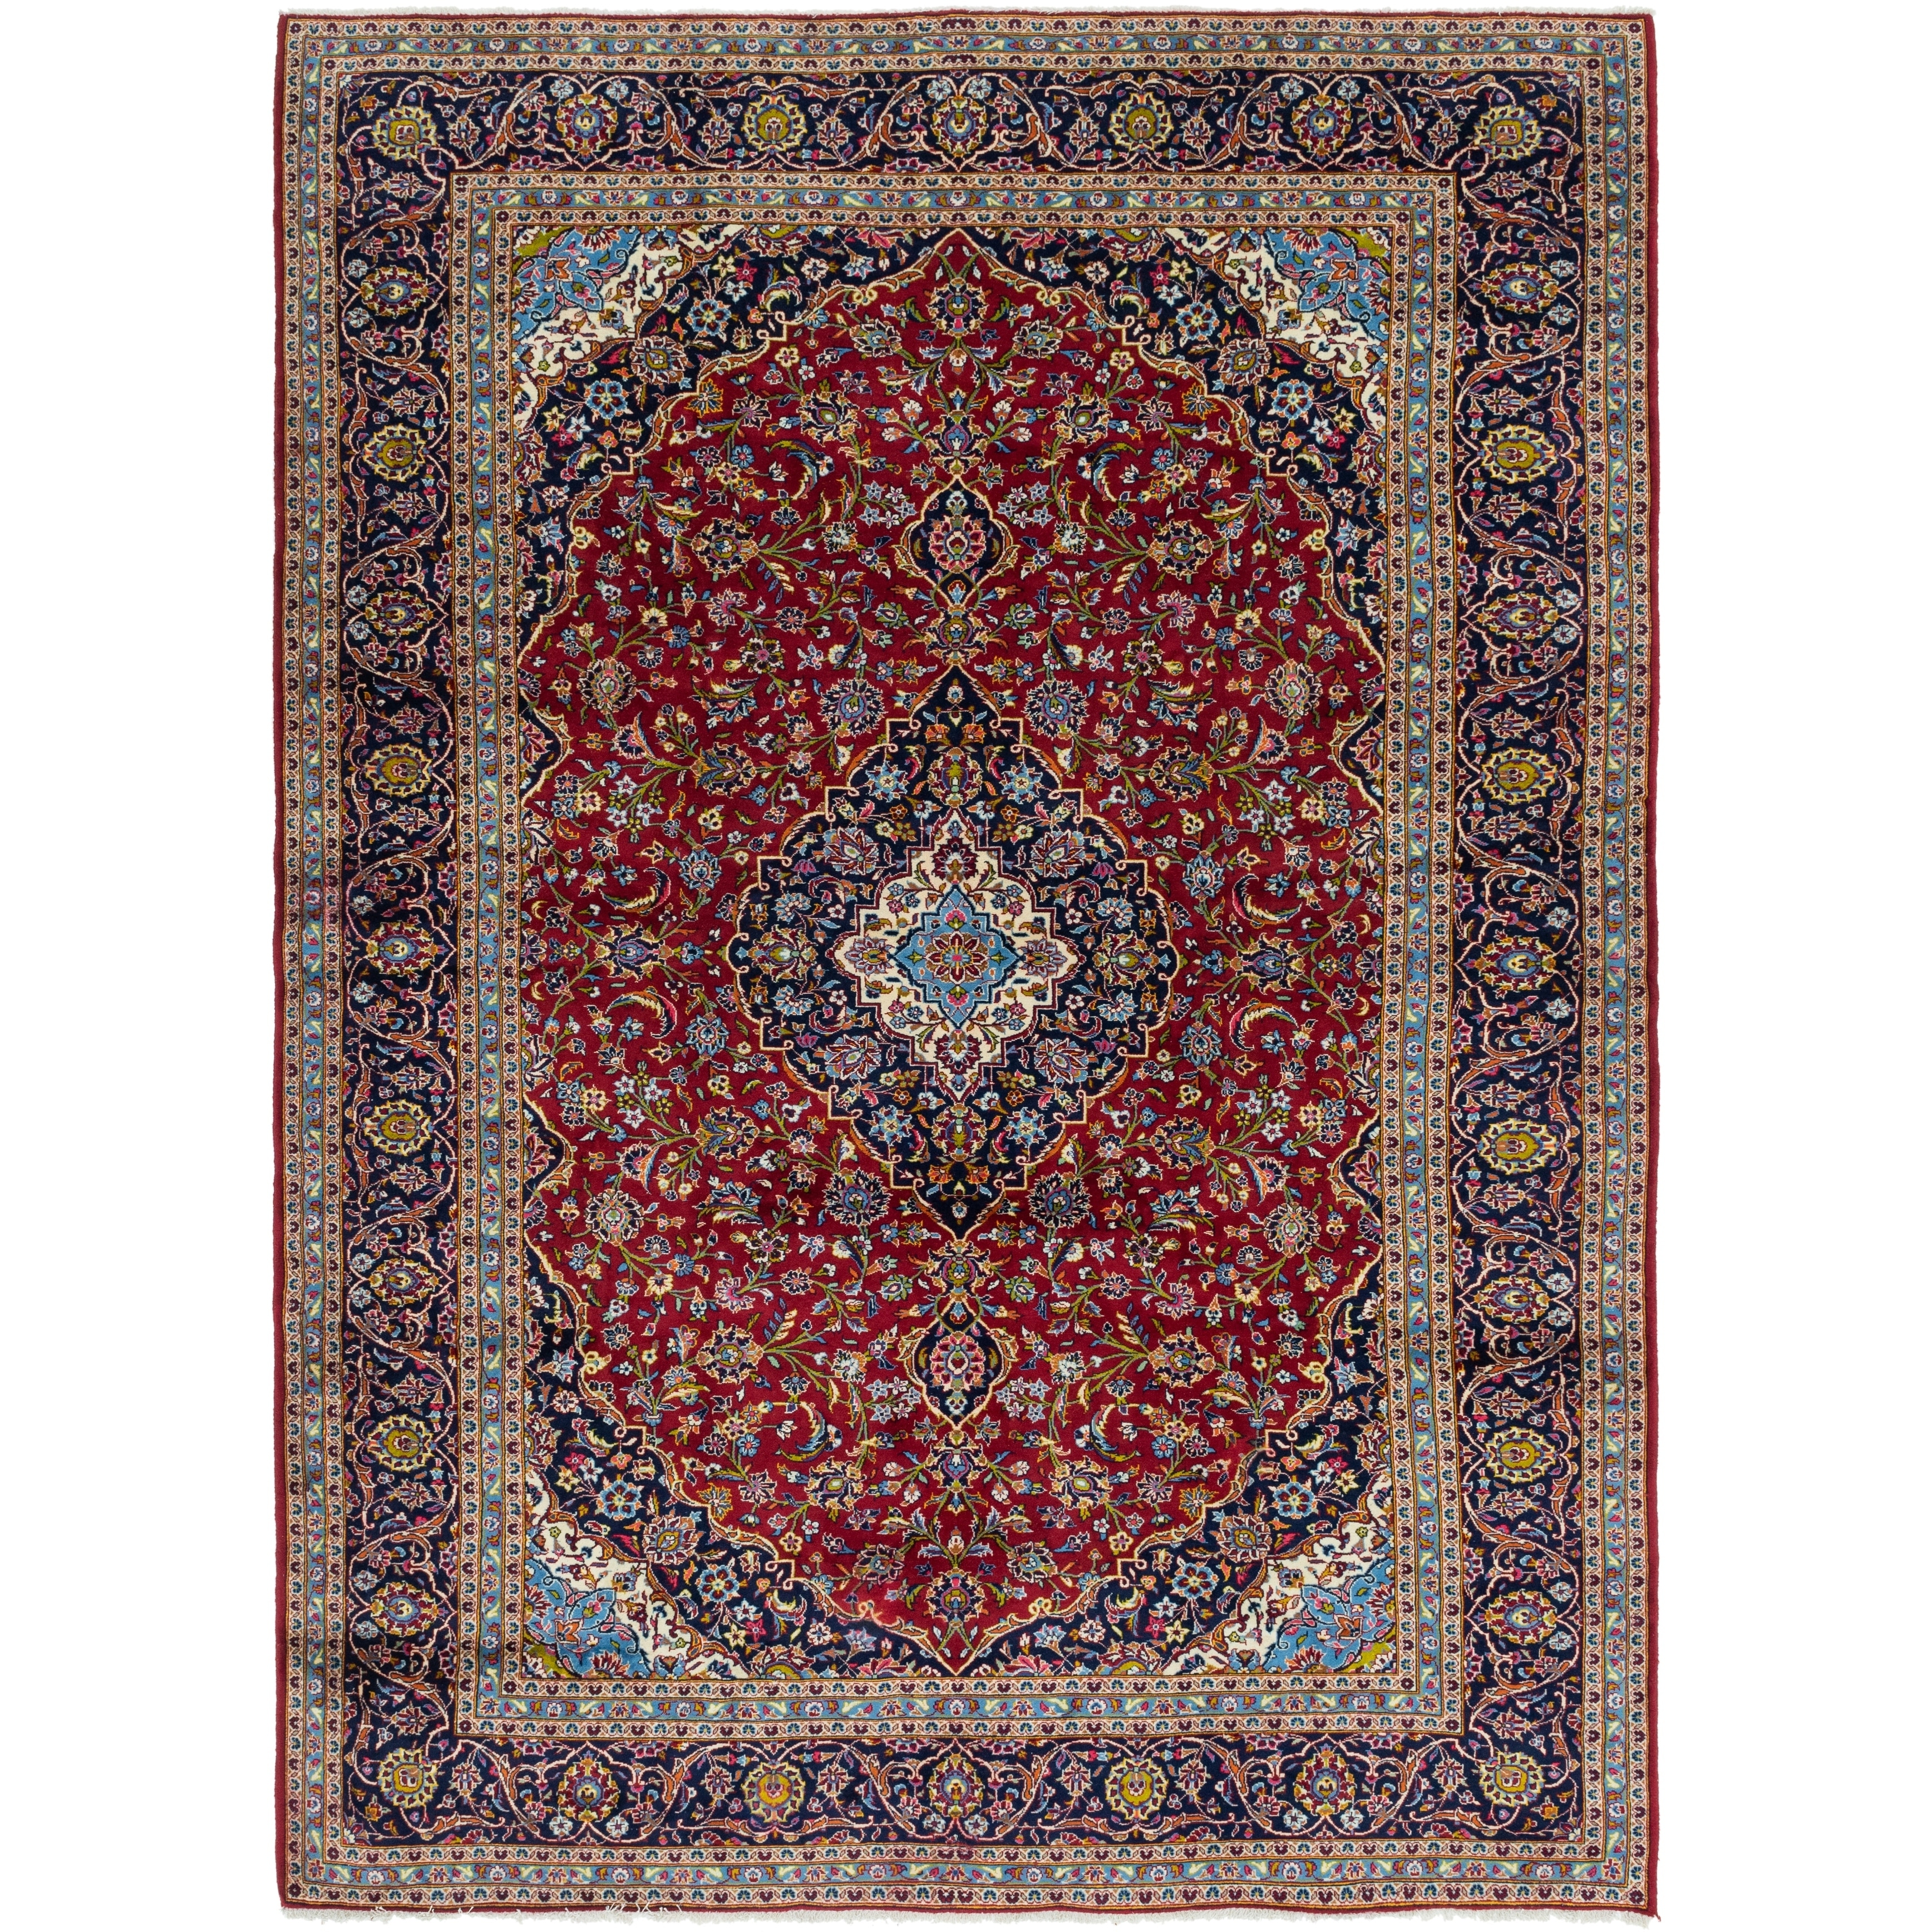 Hand Knotted Kashan Wool Area Rug - 9 10 x 13 10 (Red - 9 10 x 13 10)